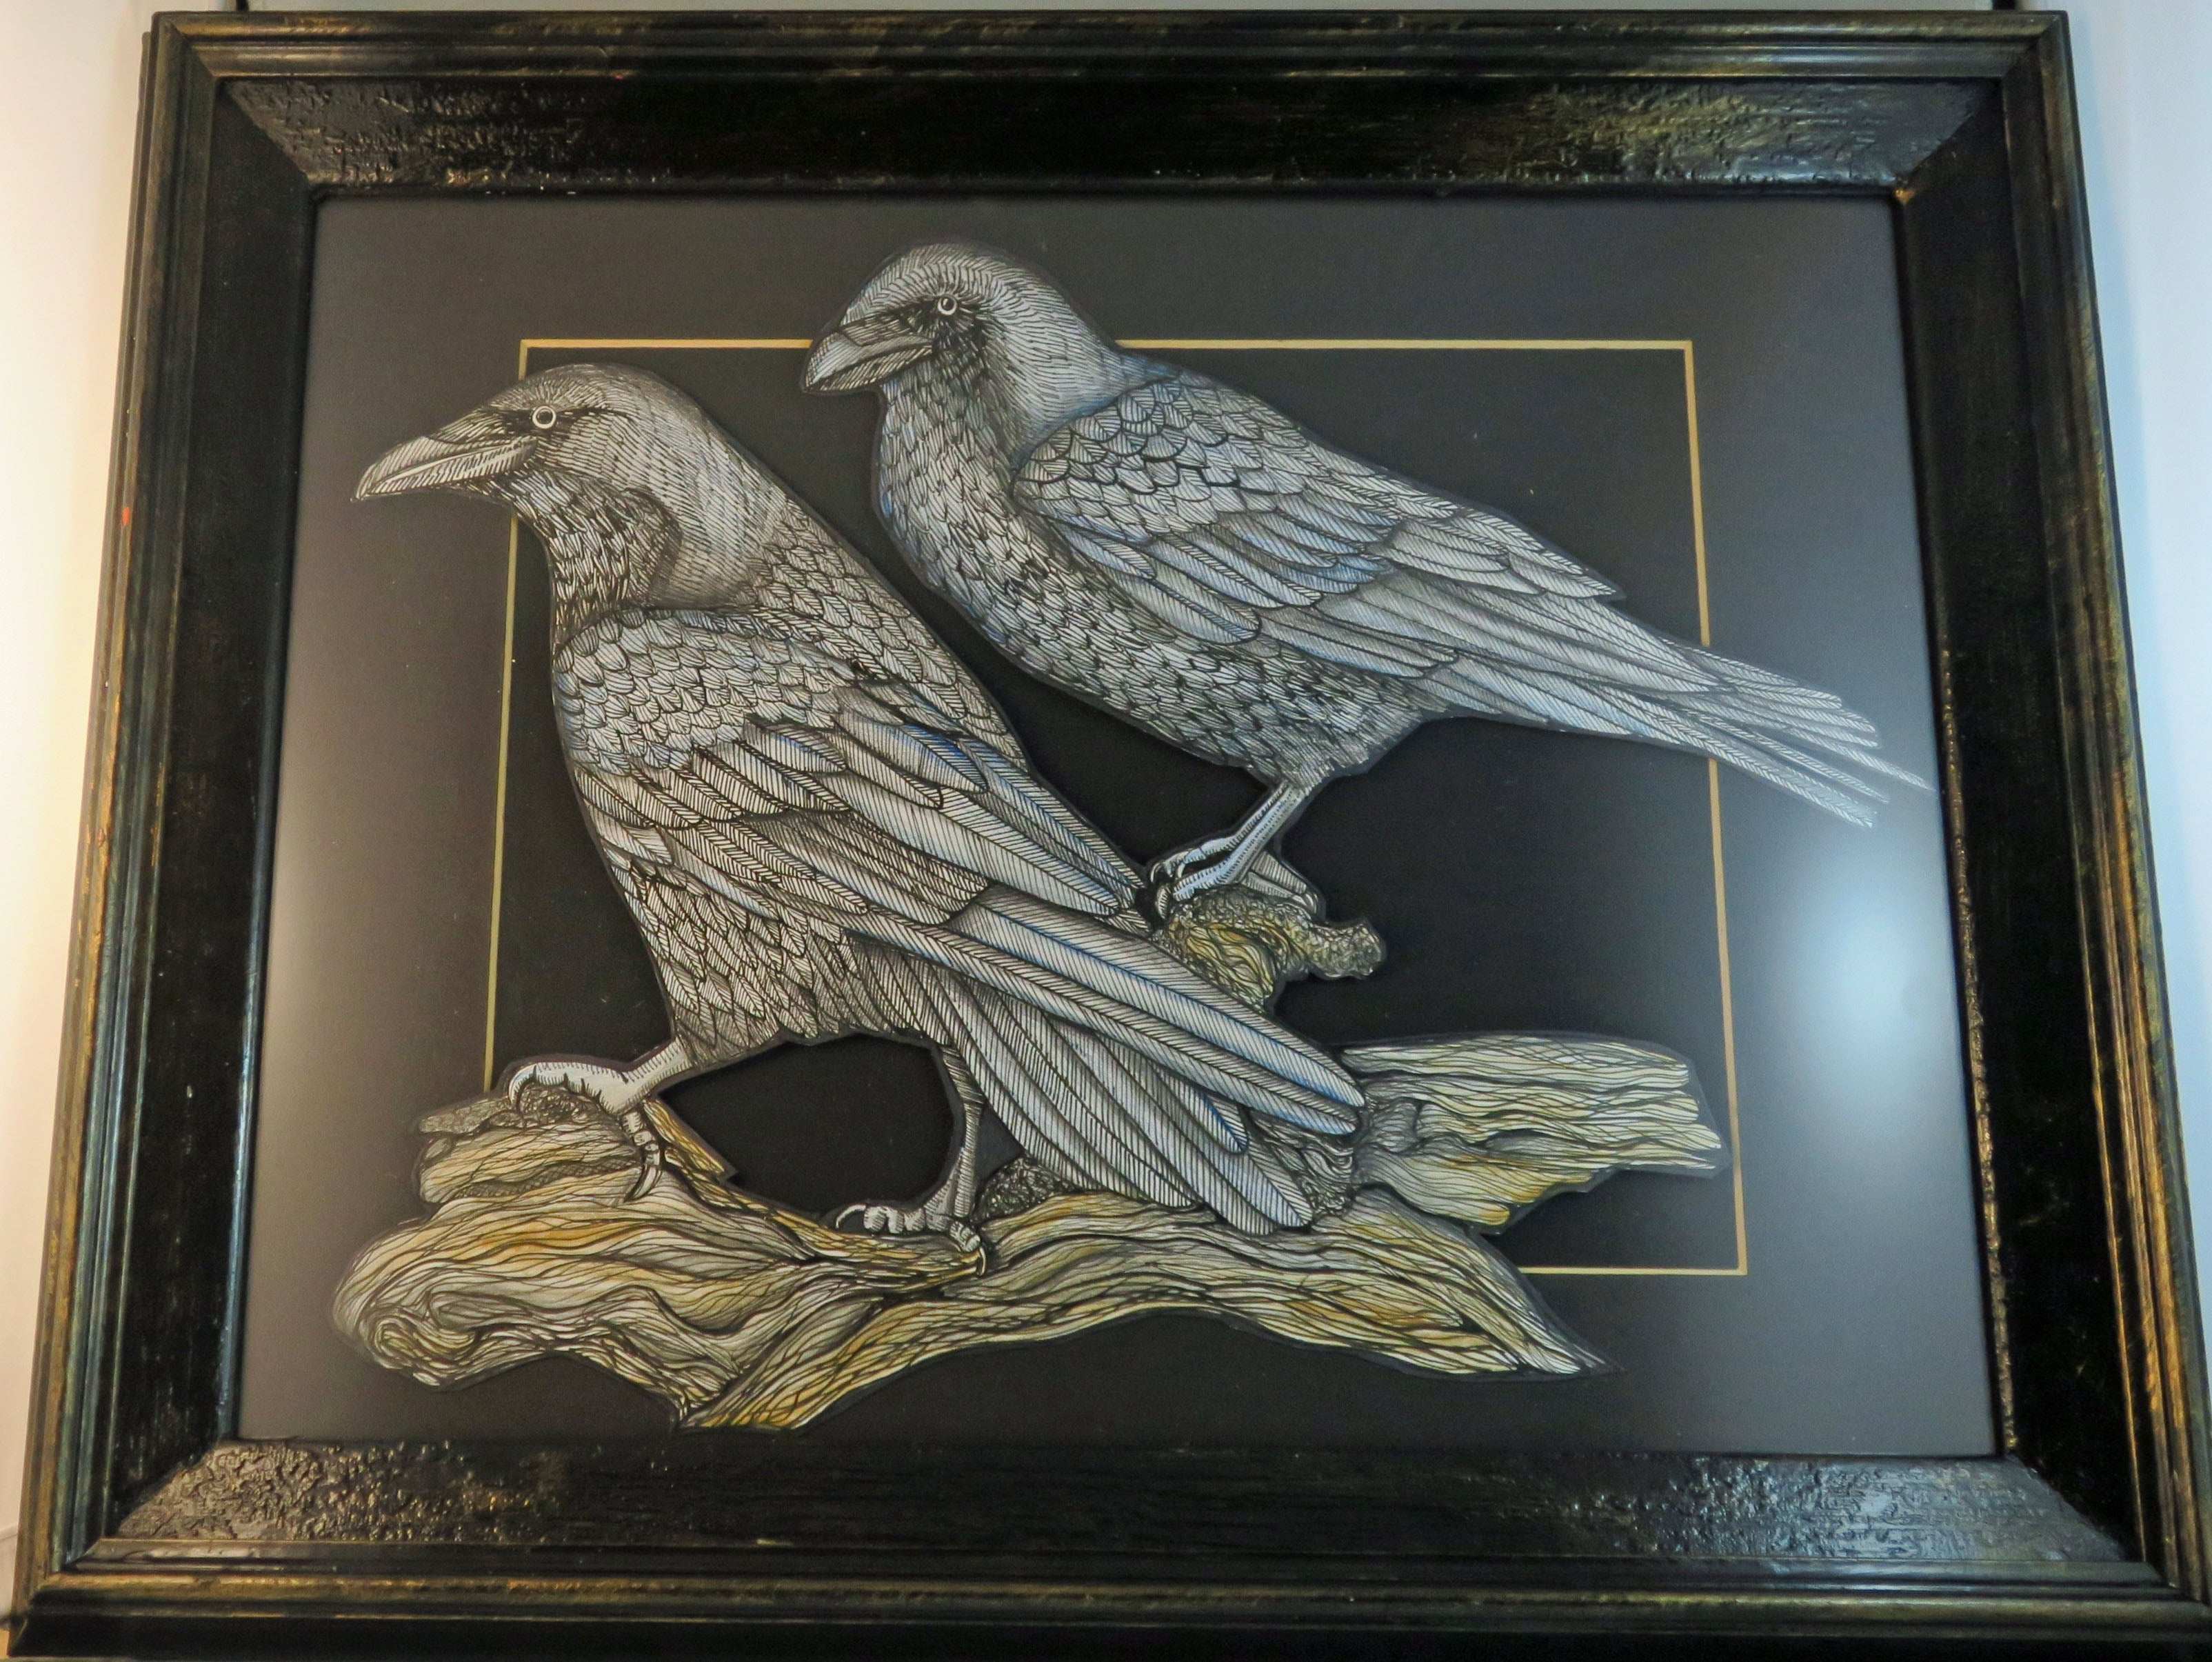 Raven original illustration framed